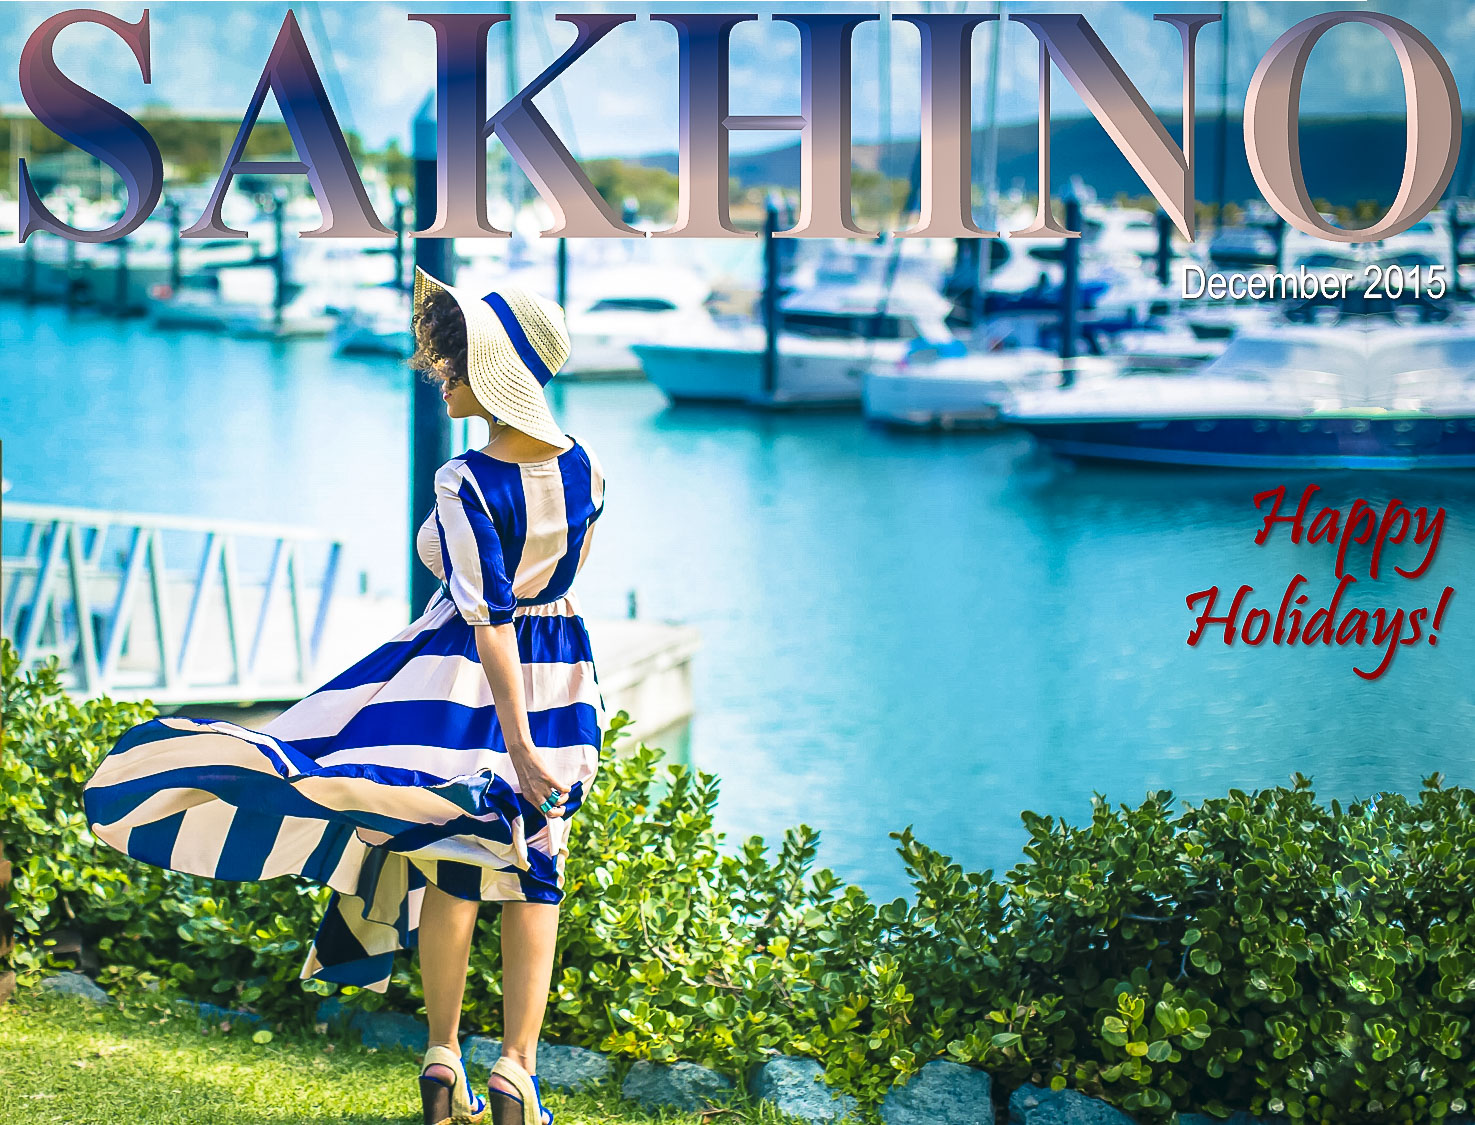 sakhino_magazine-cover-december-2015_summer-2015-editorials_australia's-top-fashion-bloggers